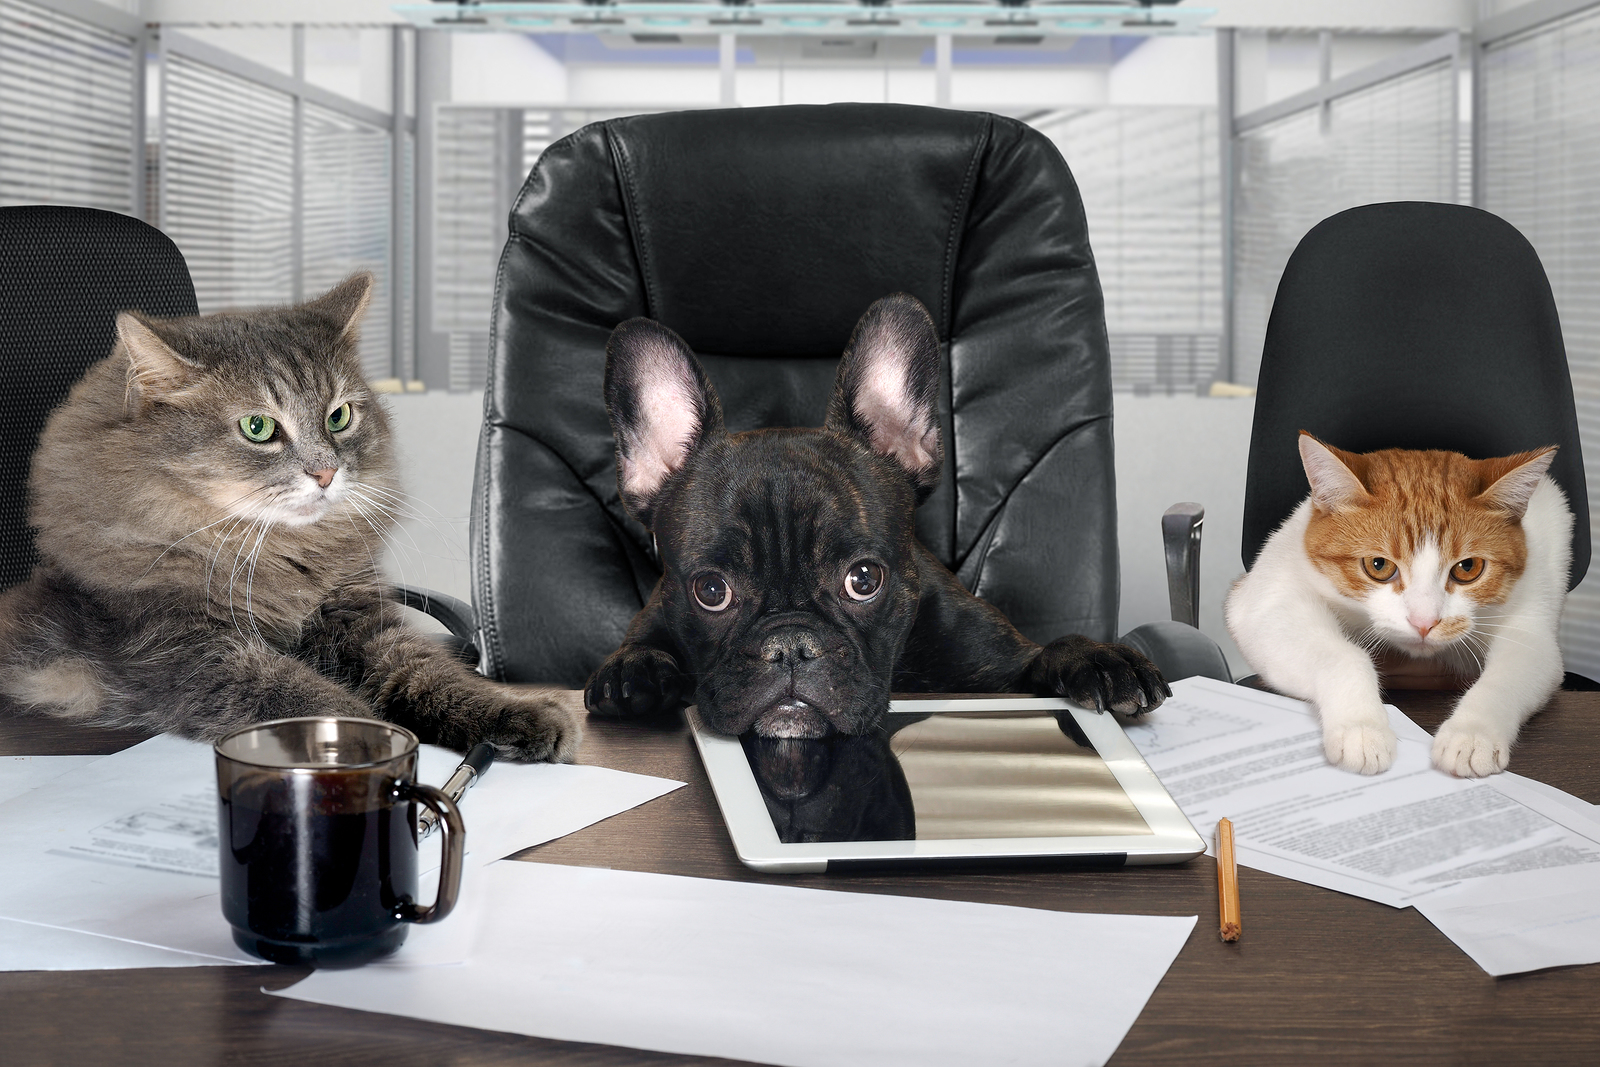 Dog as the head and cats as employees managers in an office